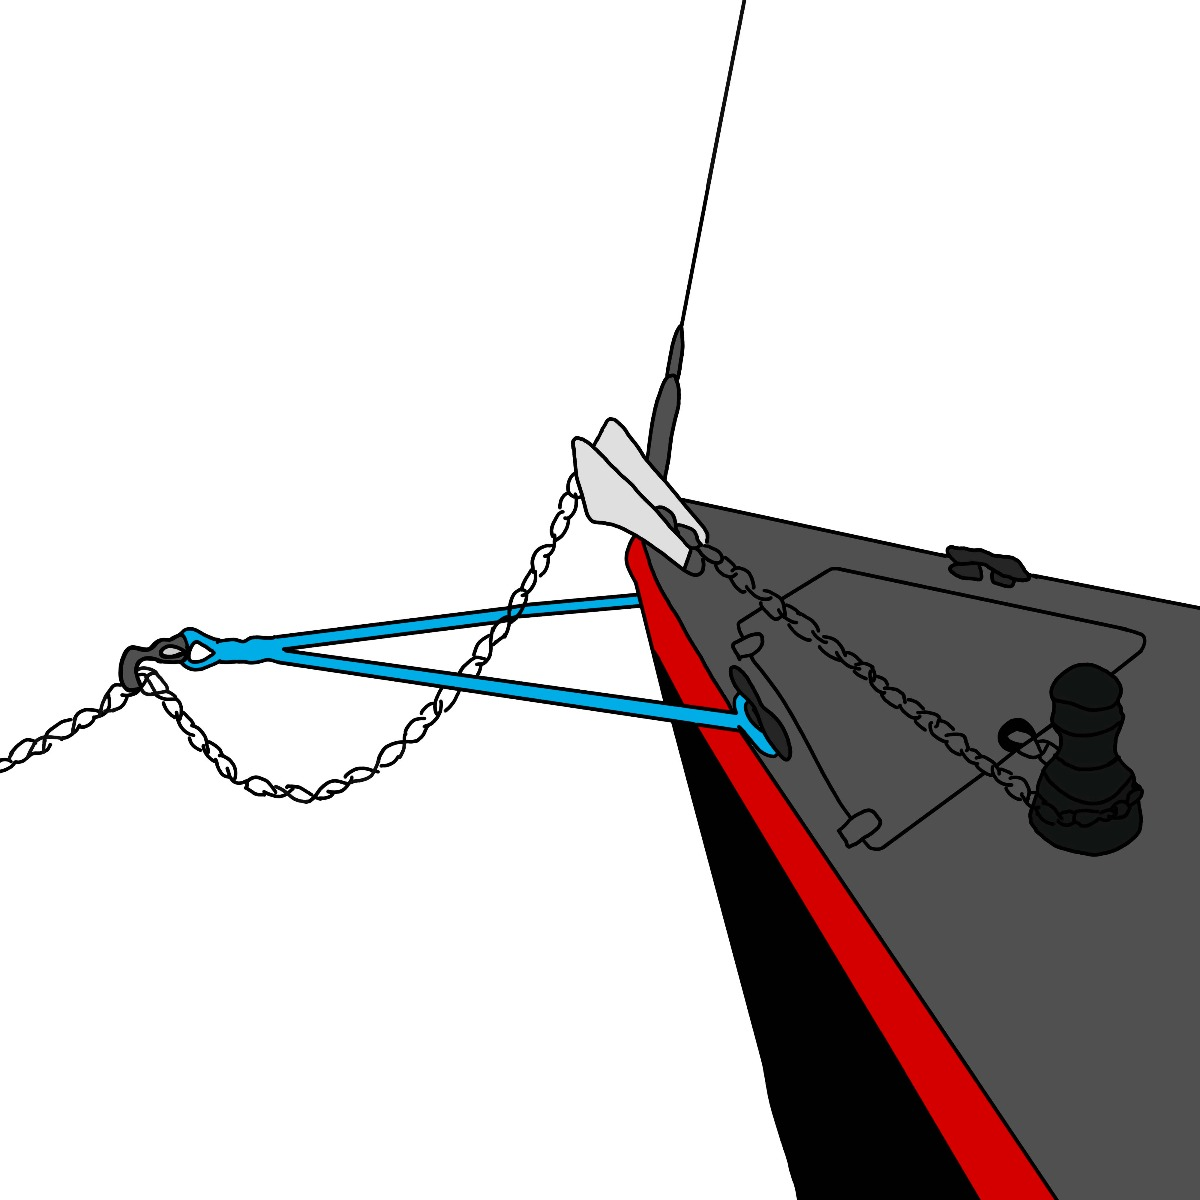 Snubber line with wichard anchor hook